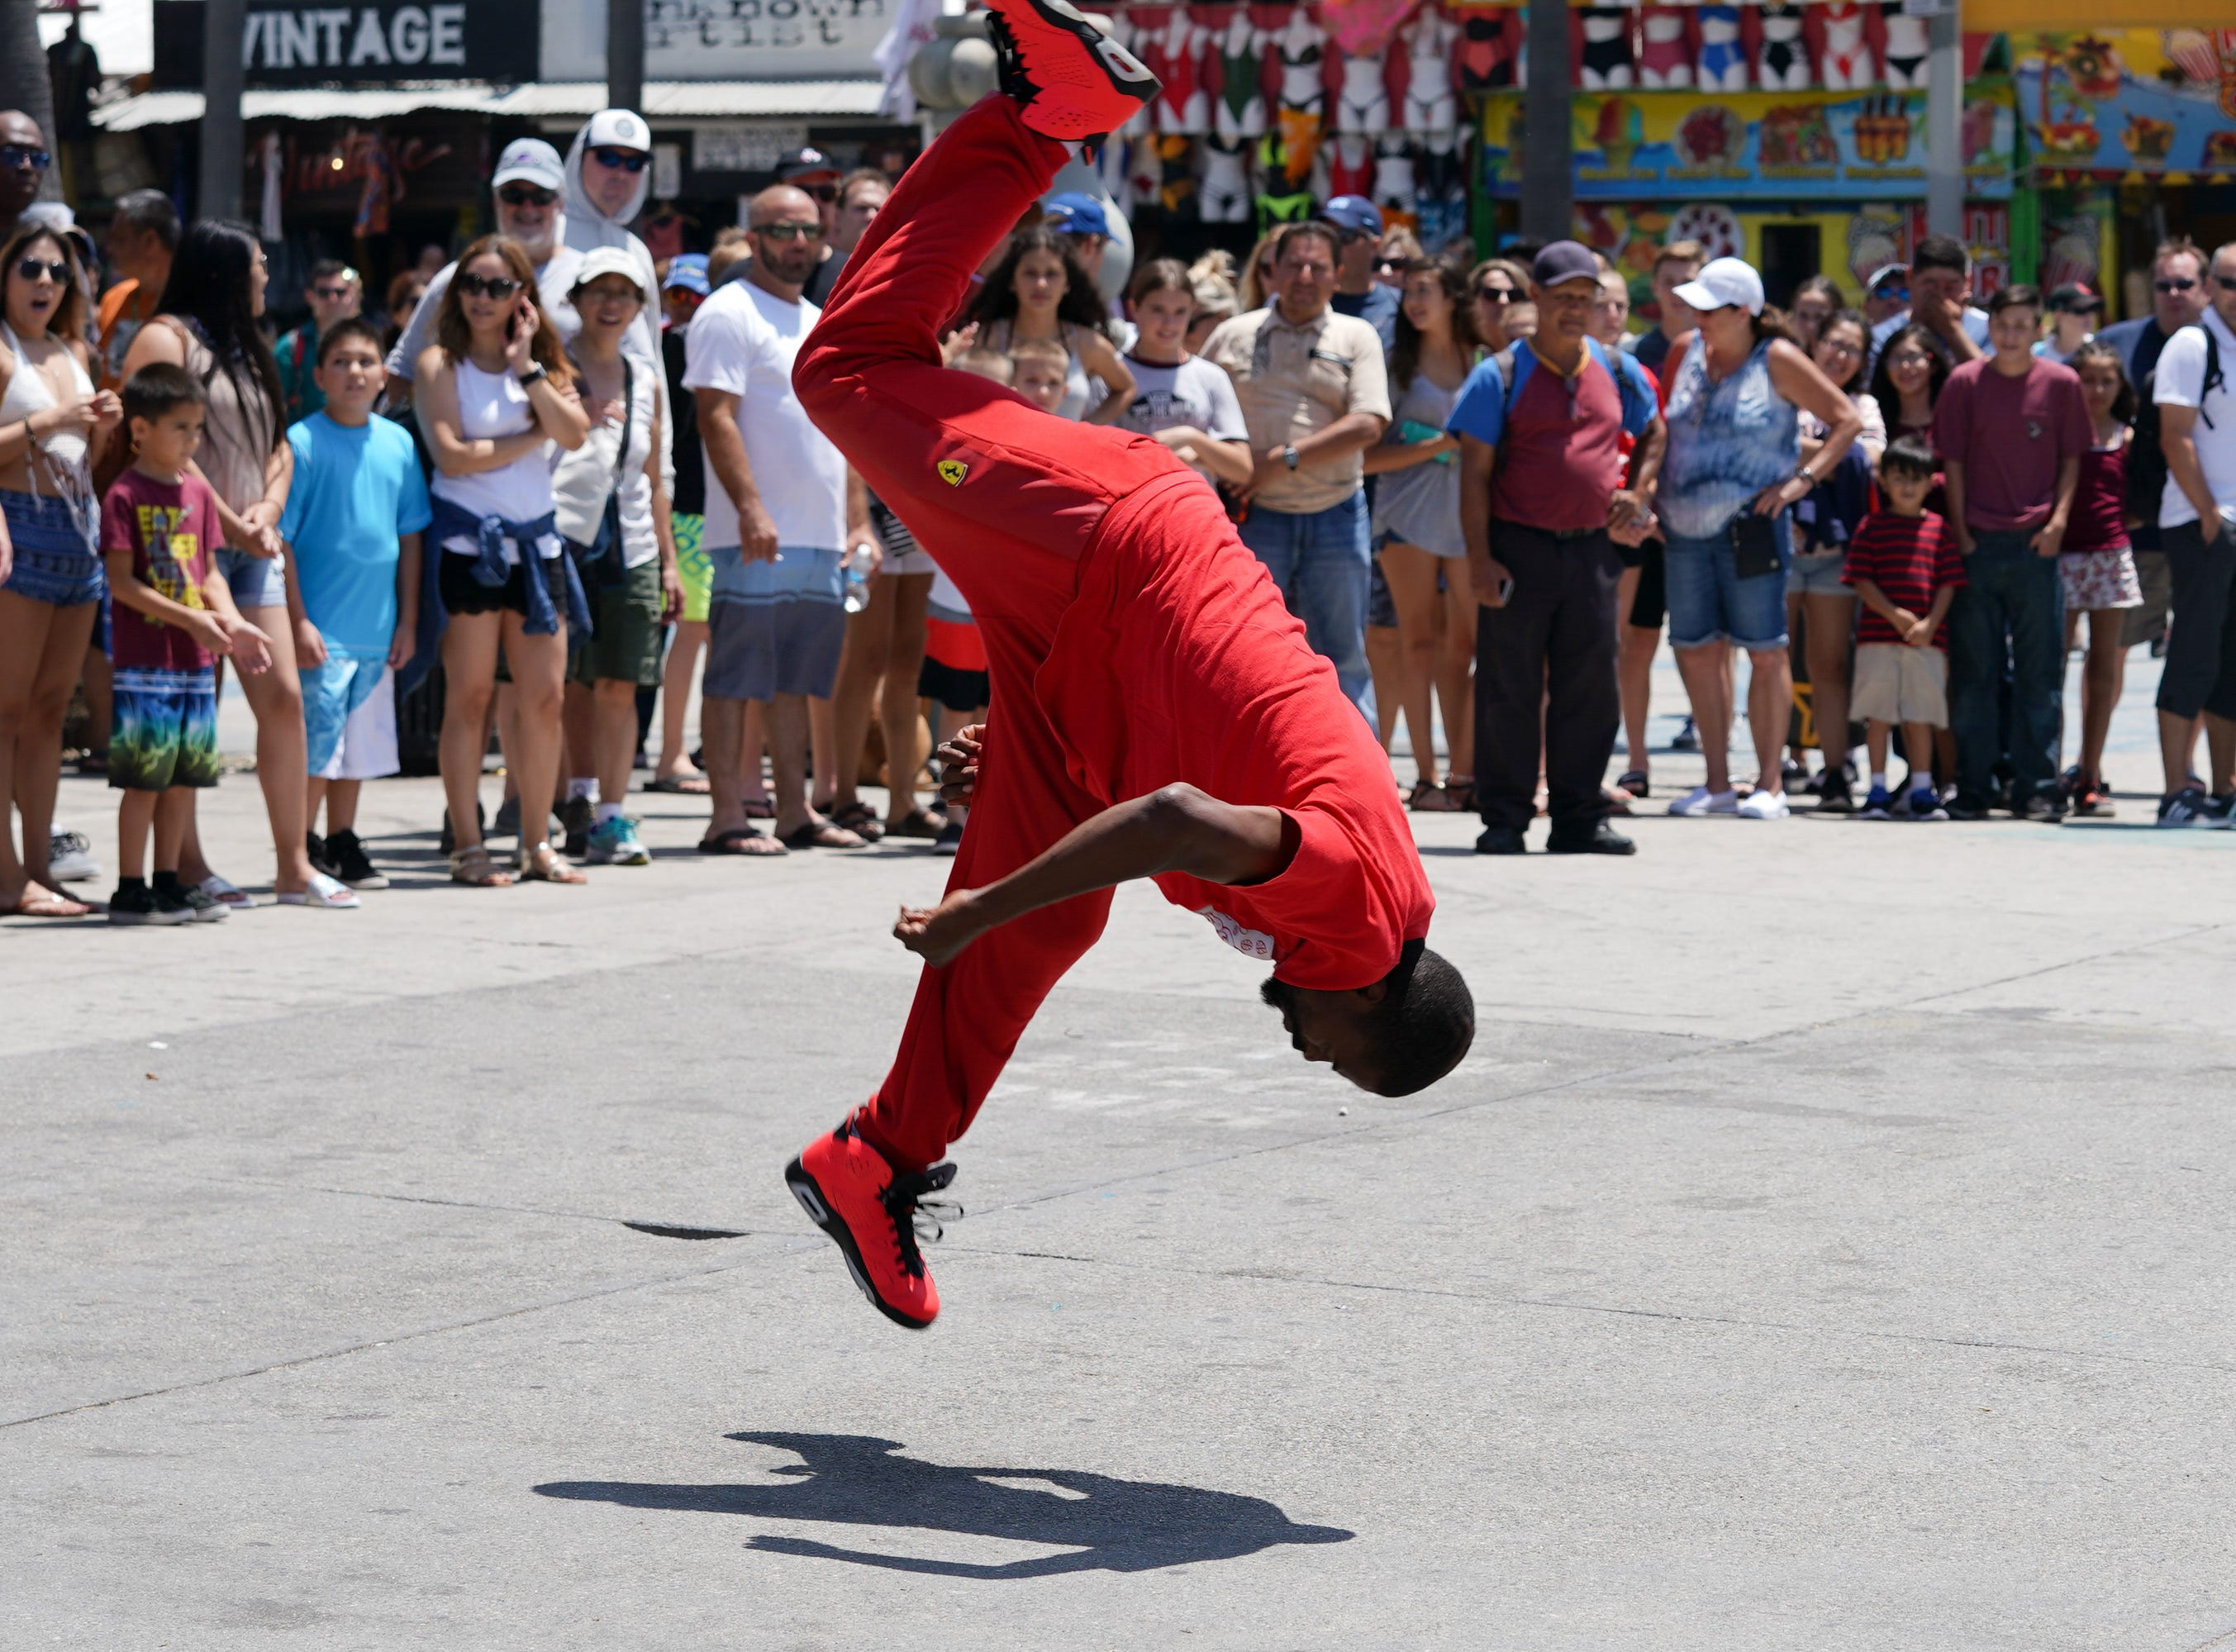 A street performer does acrobatics in Venice Beach.